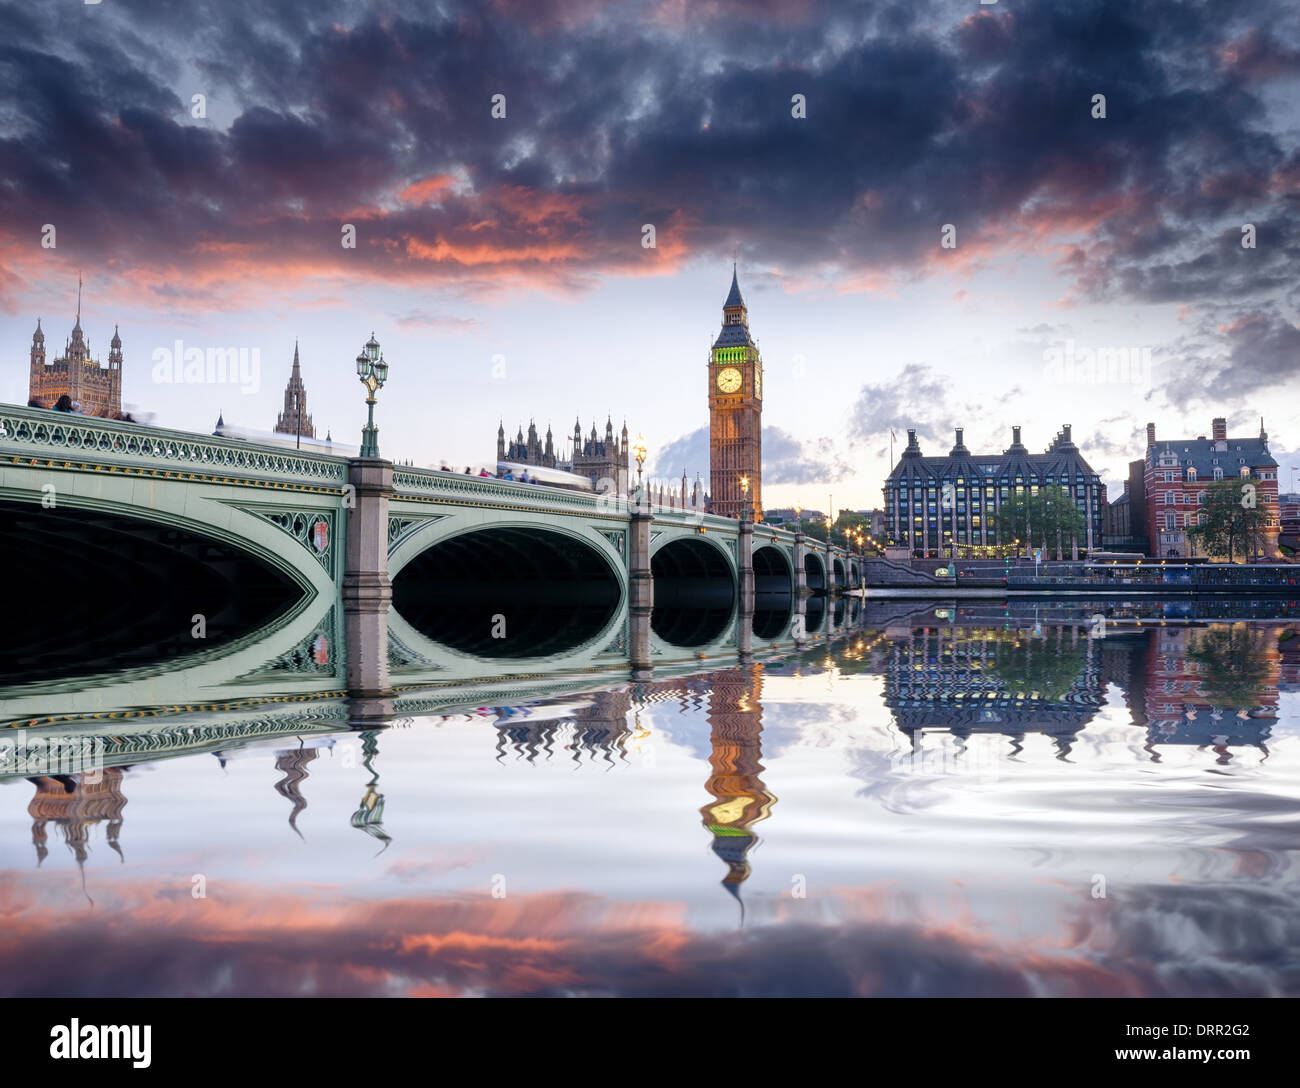 Abenddämmerung am Westminster Bridge und Big Ben in London Stockfoto